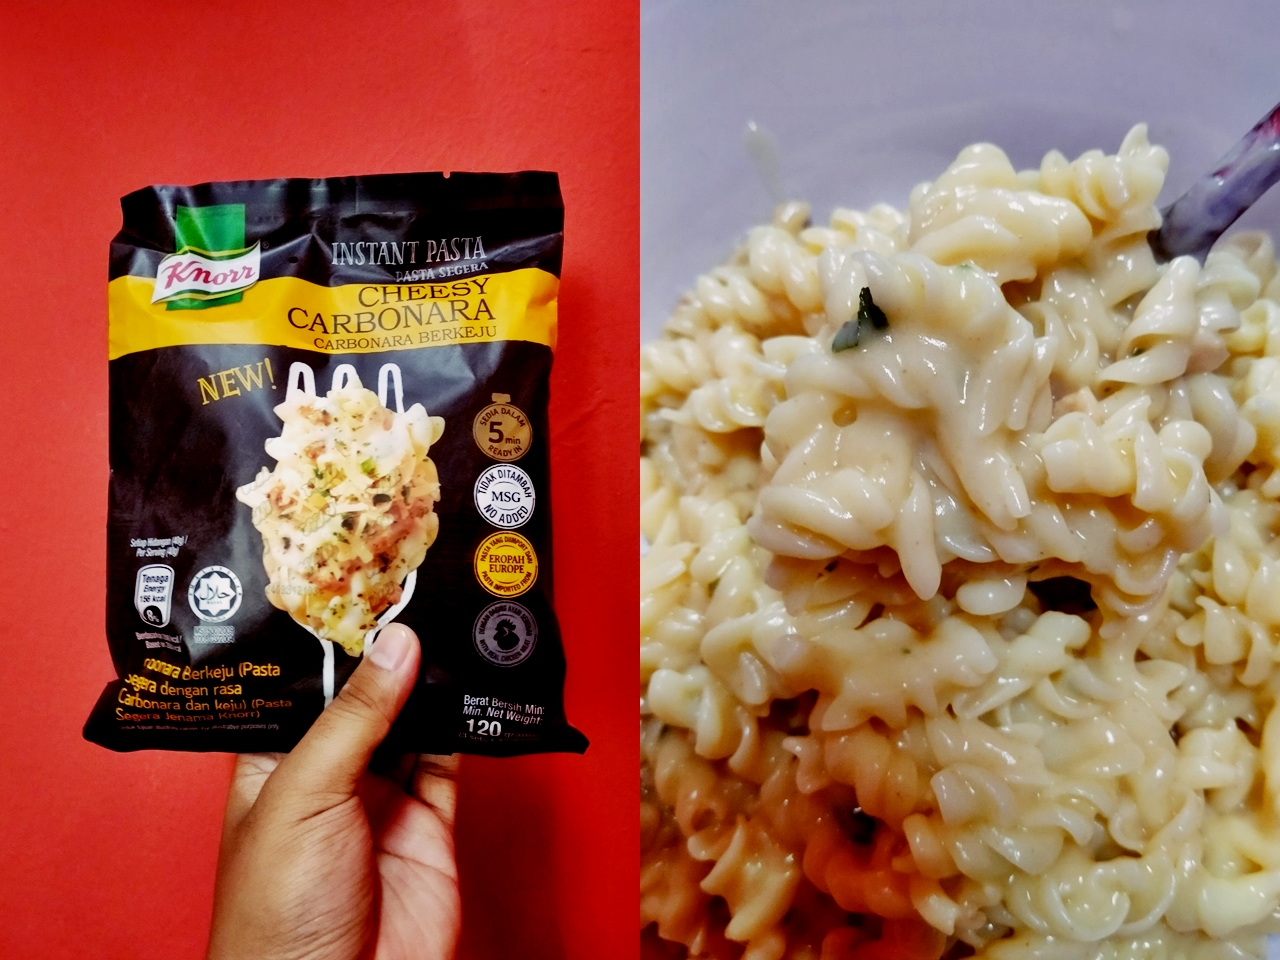 Review Instant Pasta Knorr Cheesy Carbonara